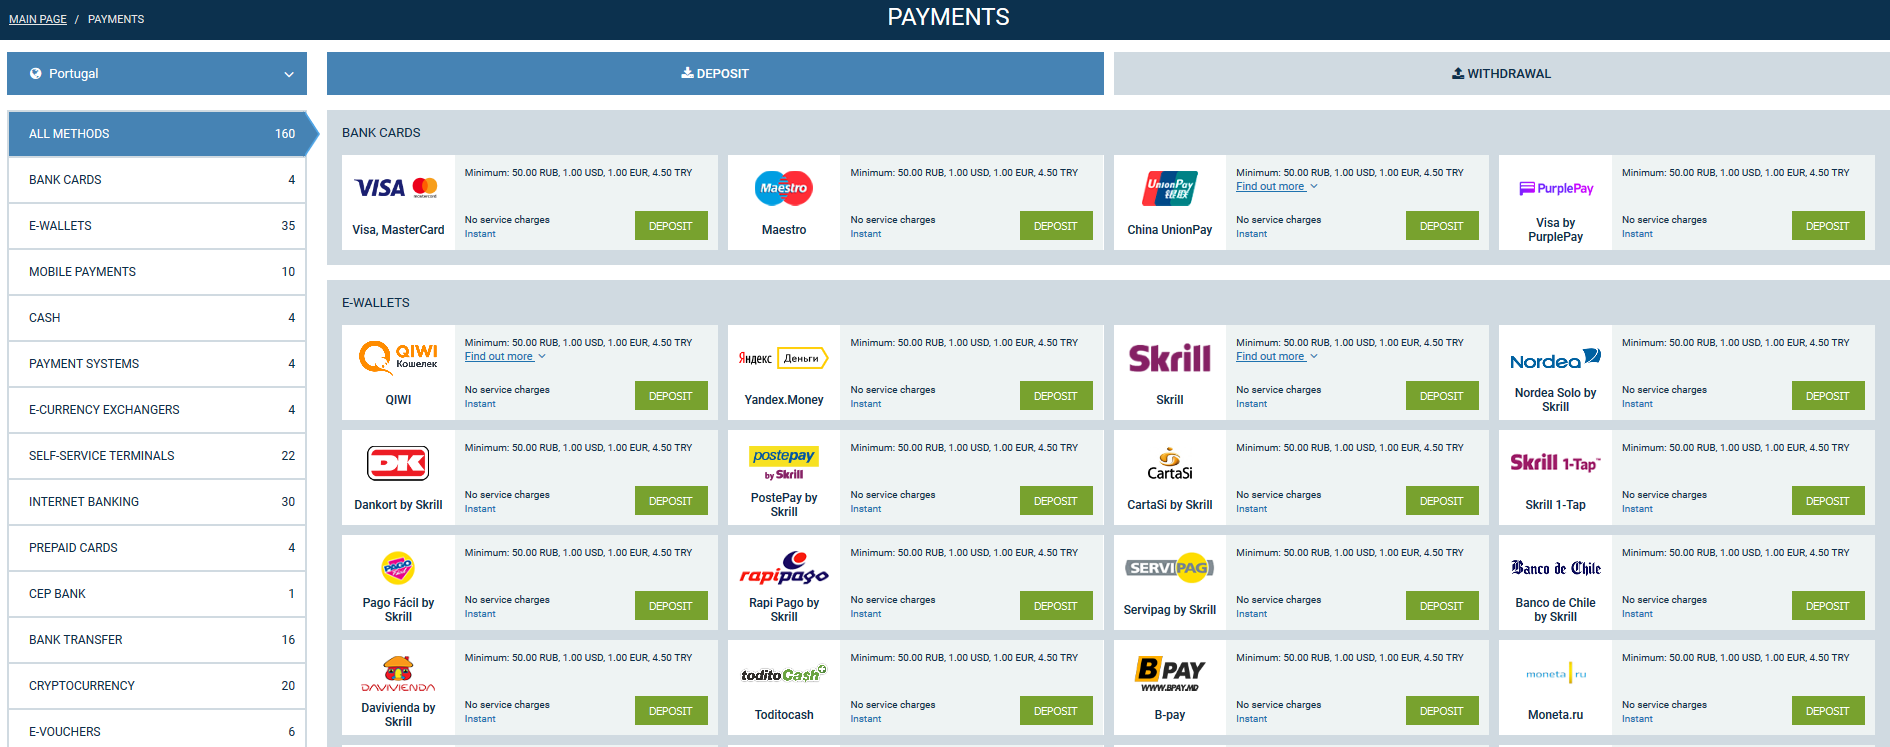 1xbet payments